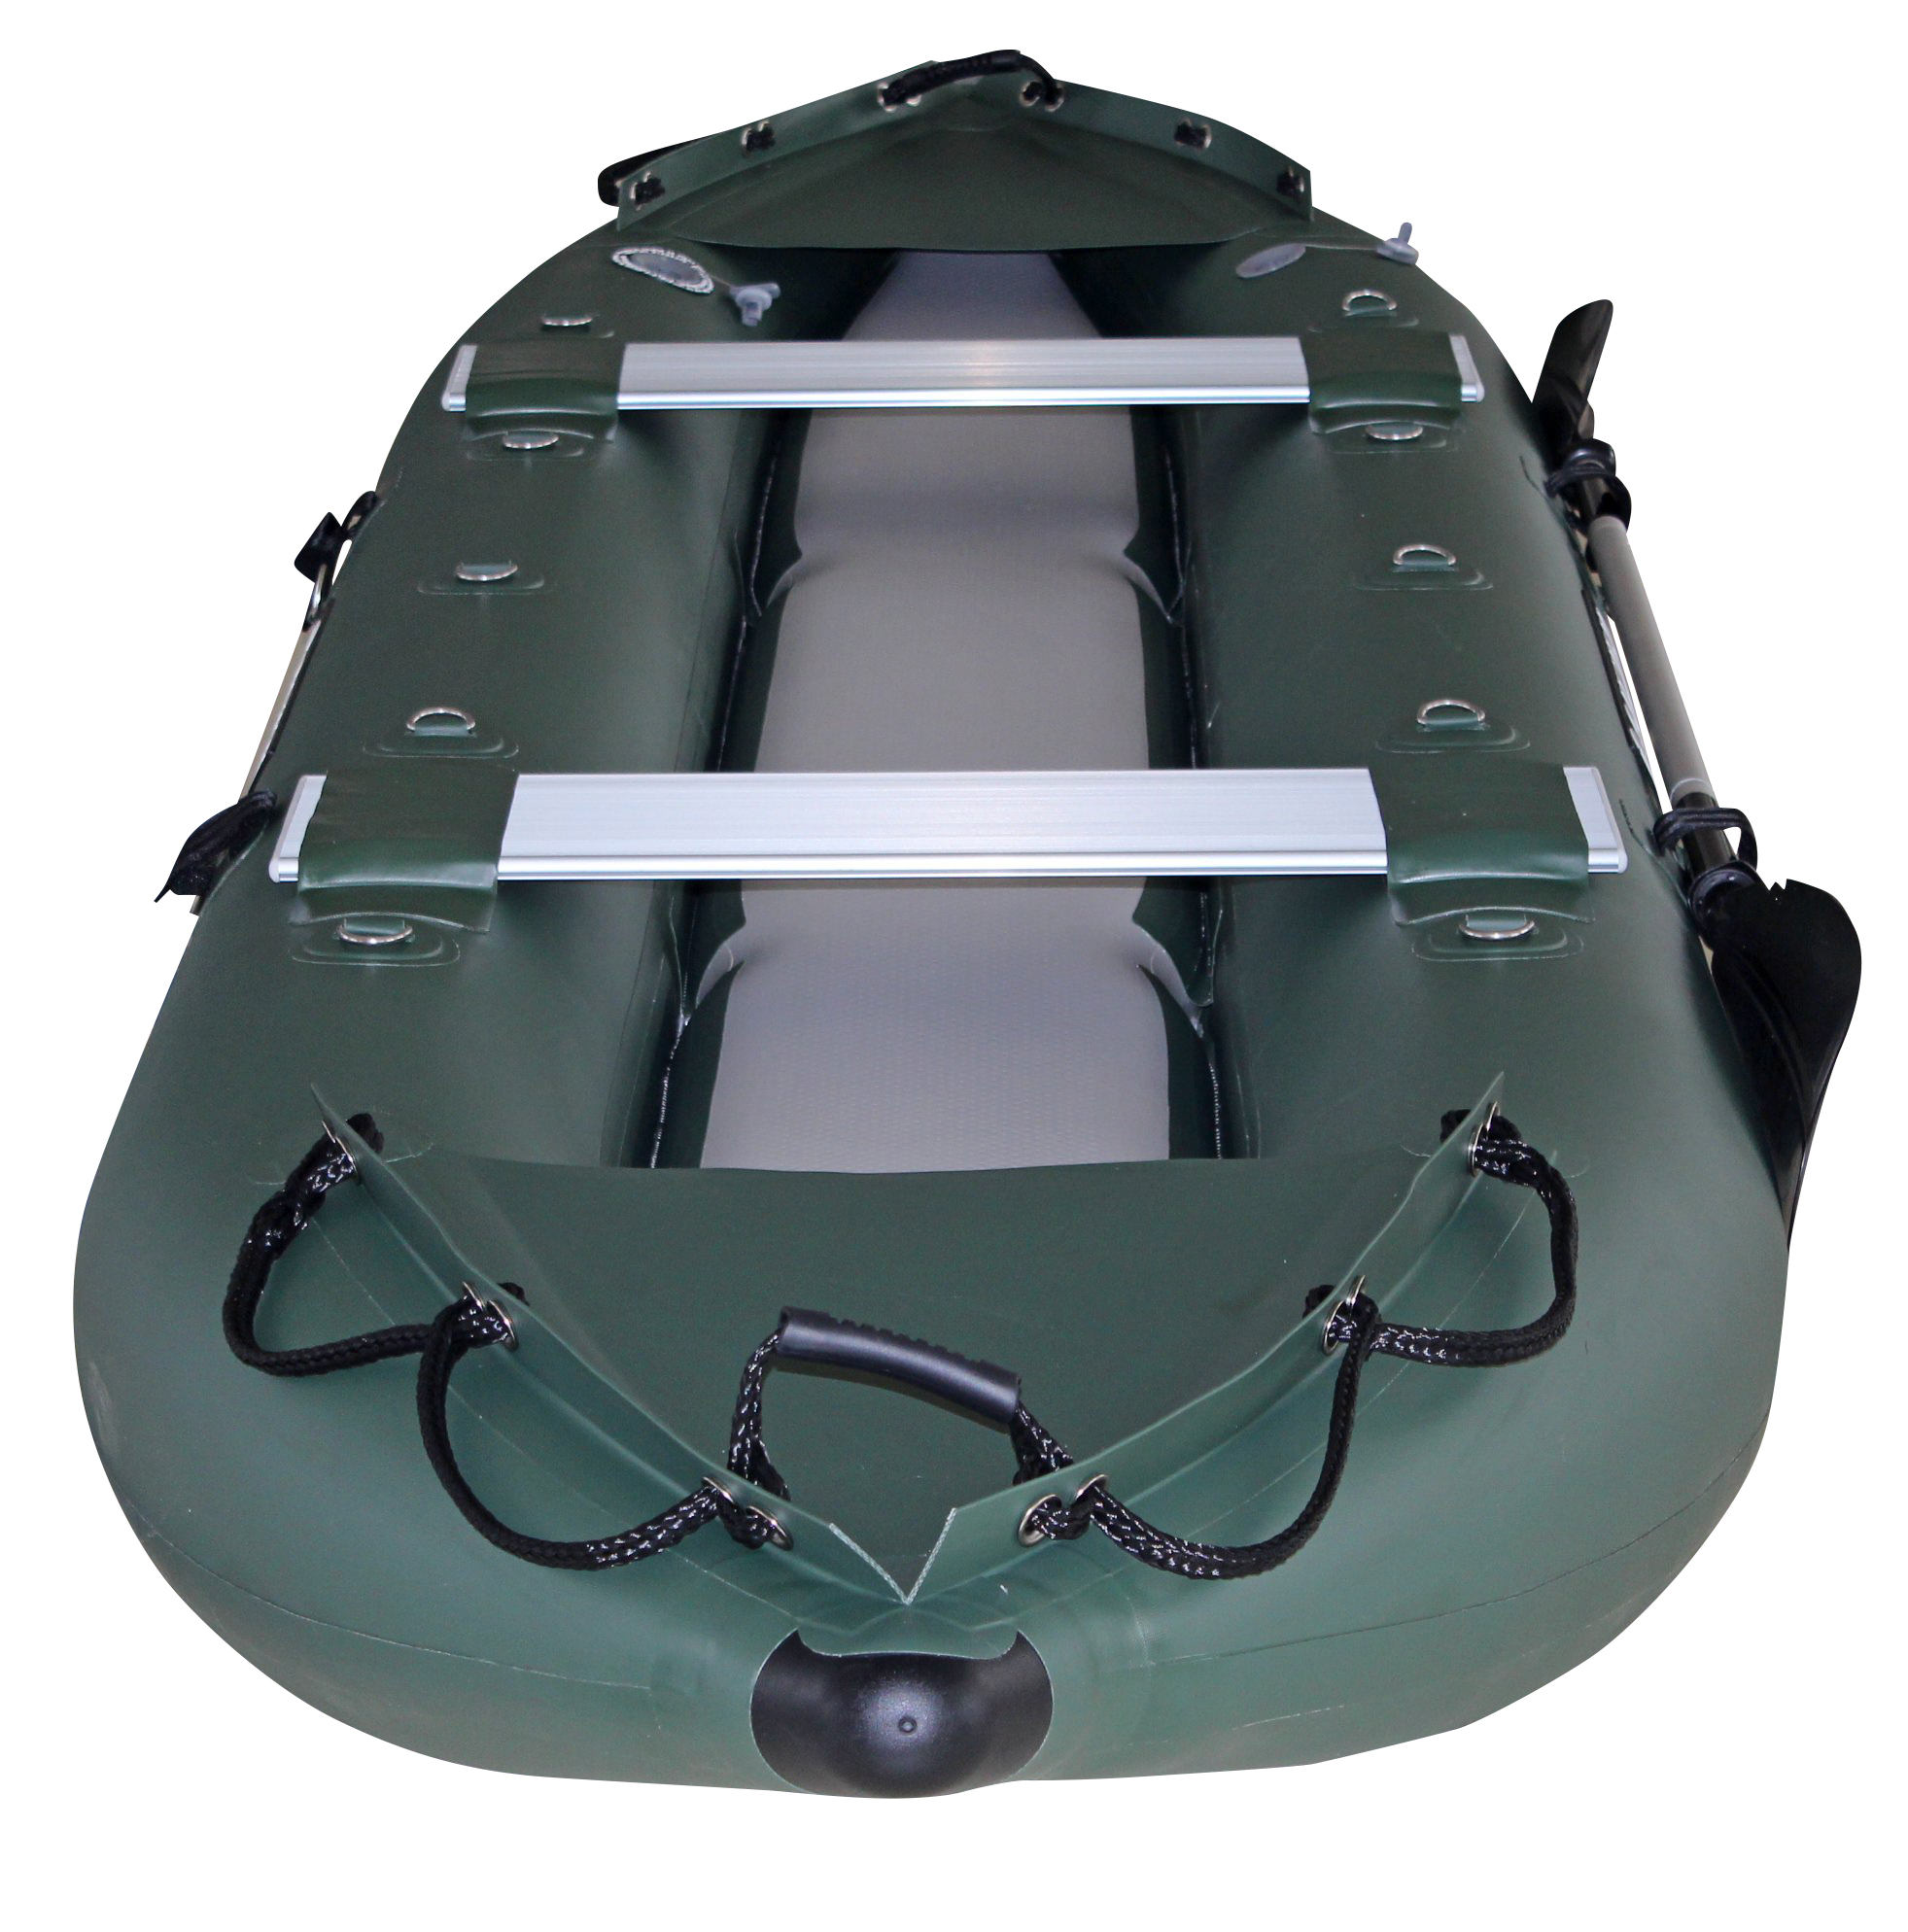 New 2021 Model 13' Saturn Ocean Fishing Kayak